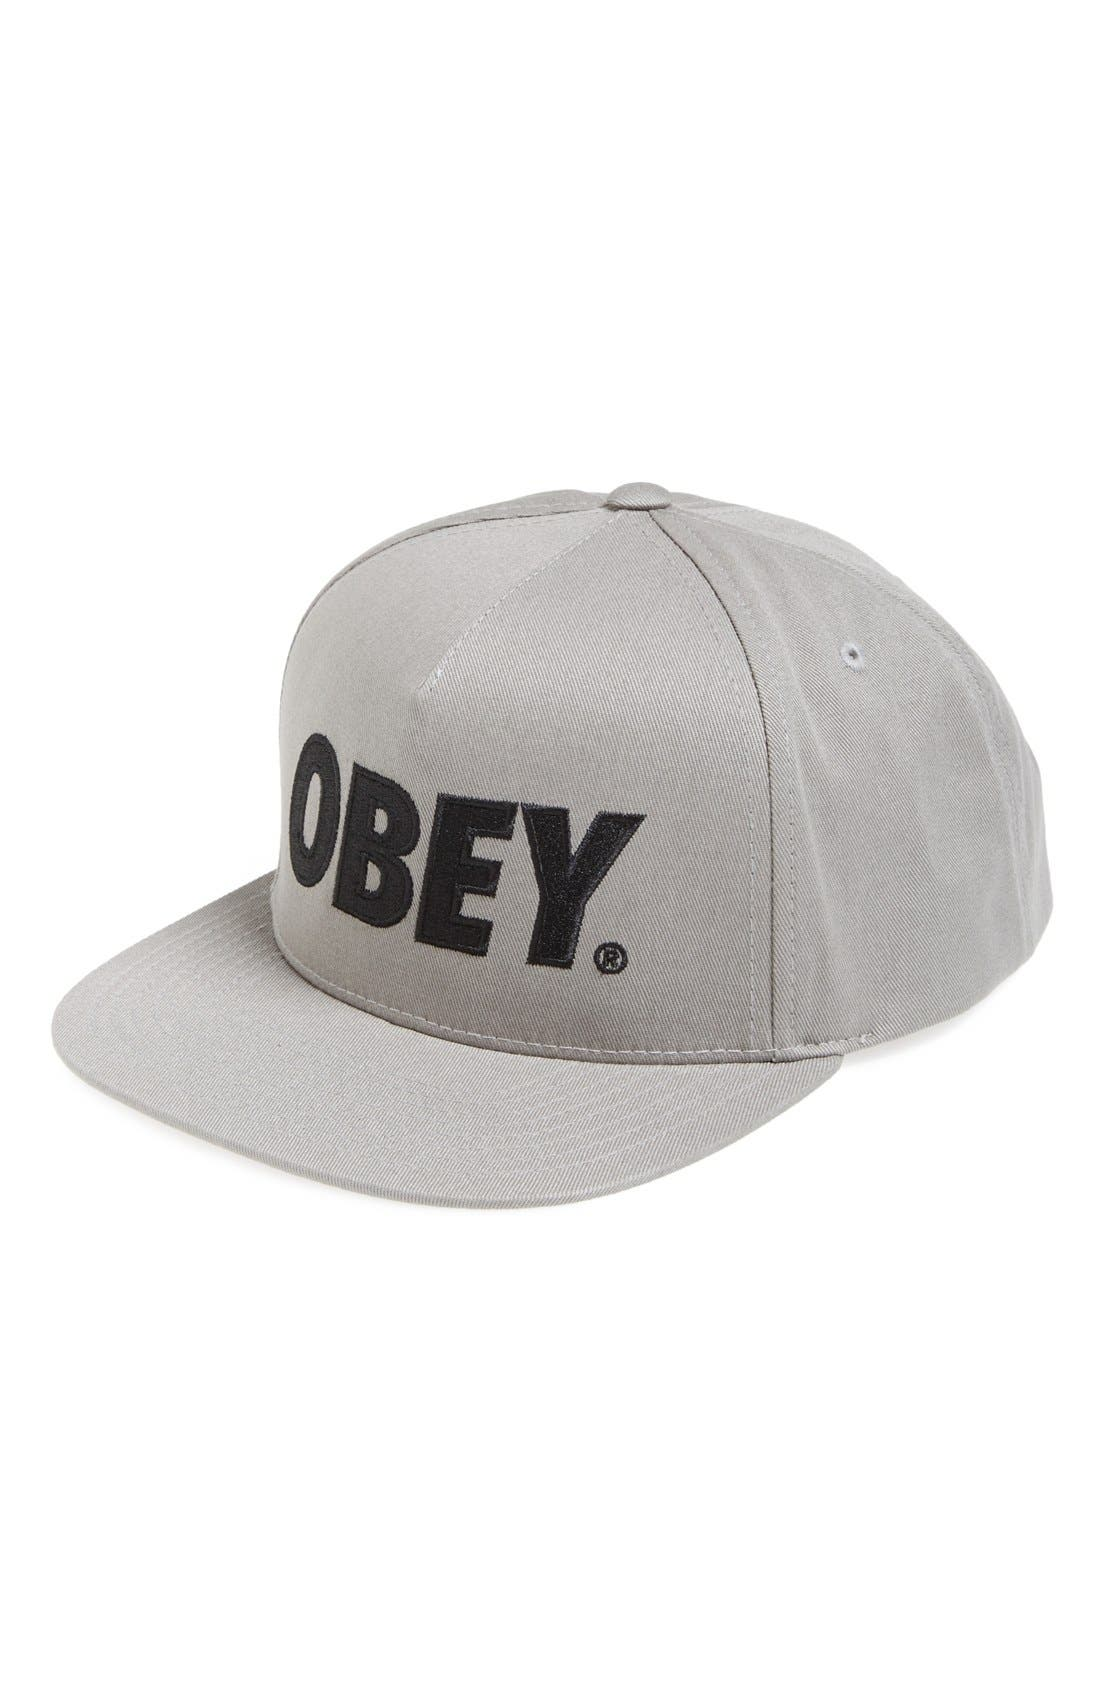 Alternate Image 1 Selected - Obey 'The City' Snapback Baseball Cap